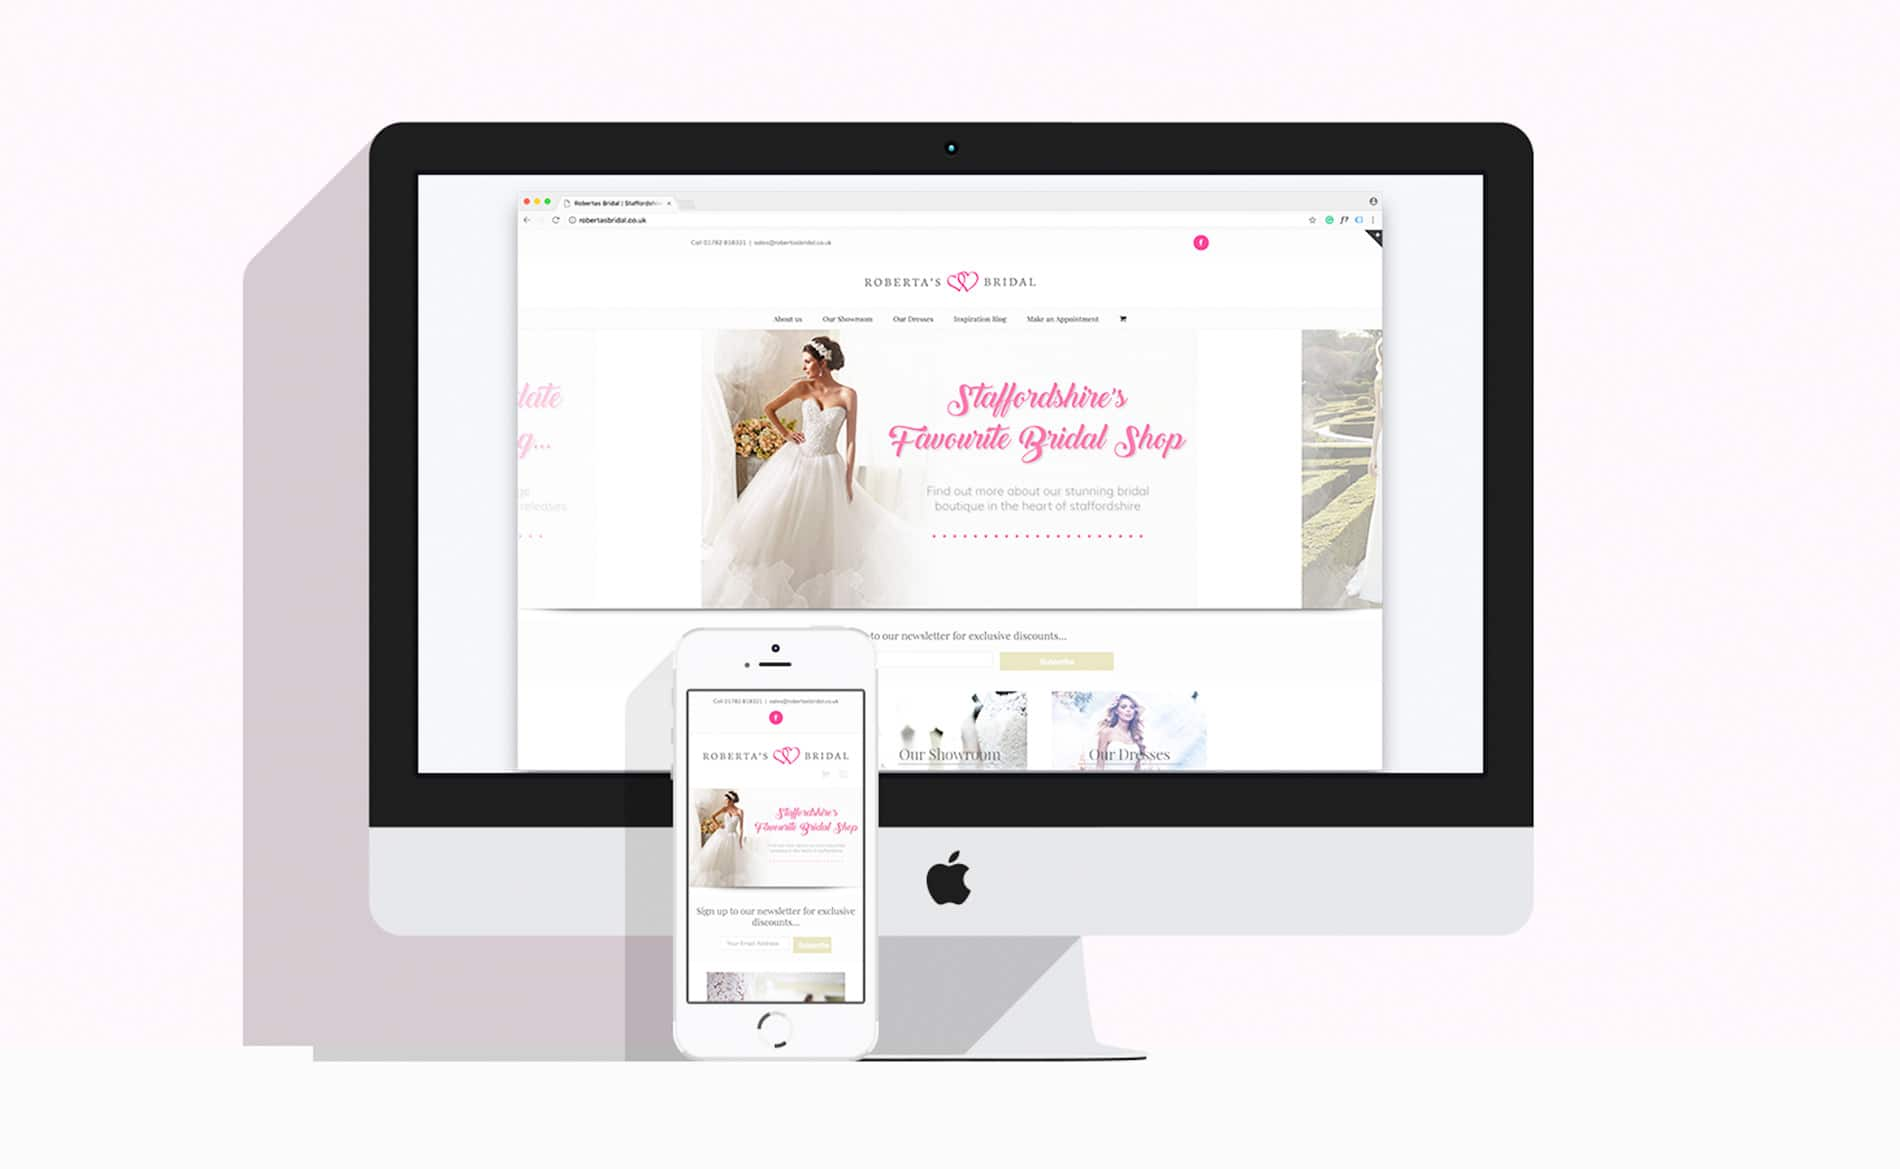 Web & Graphic Design - Staffordshire, Robertas Bridal